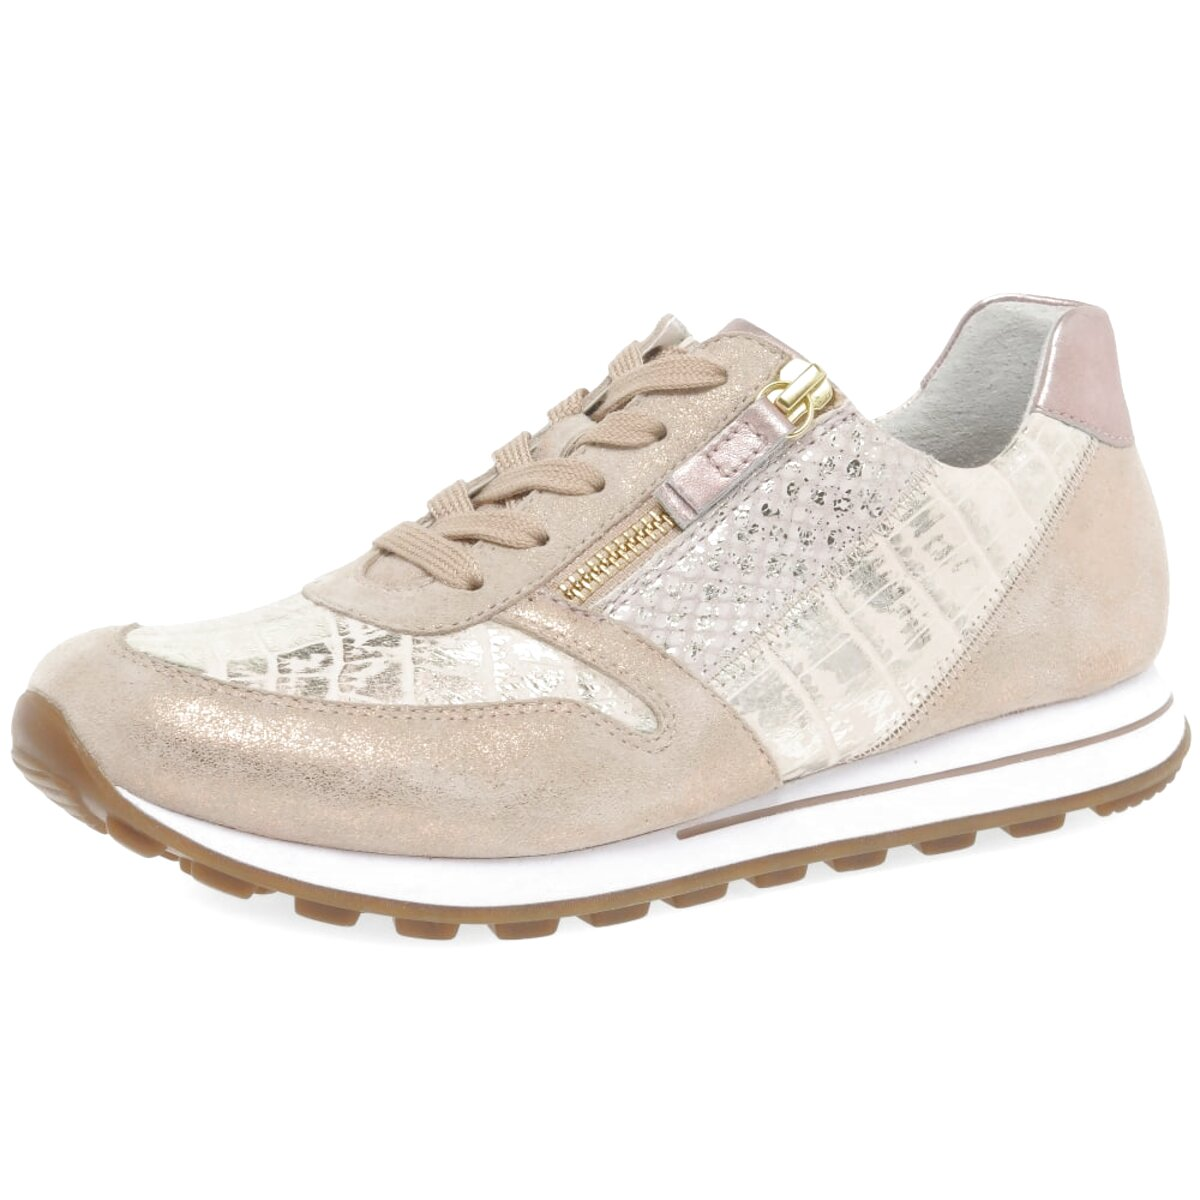 gabor trainers for sale